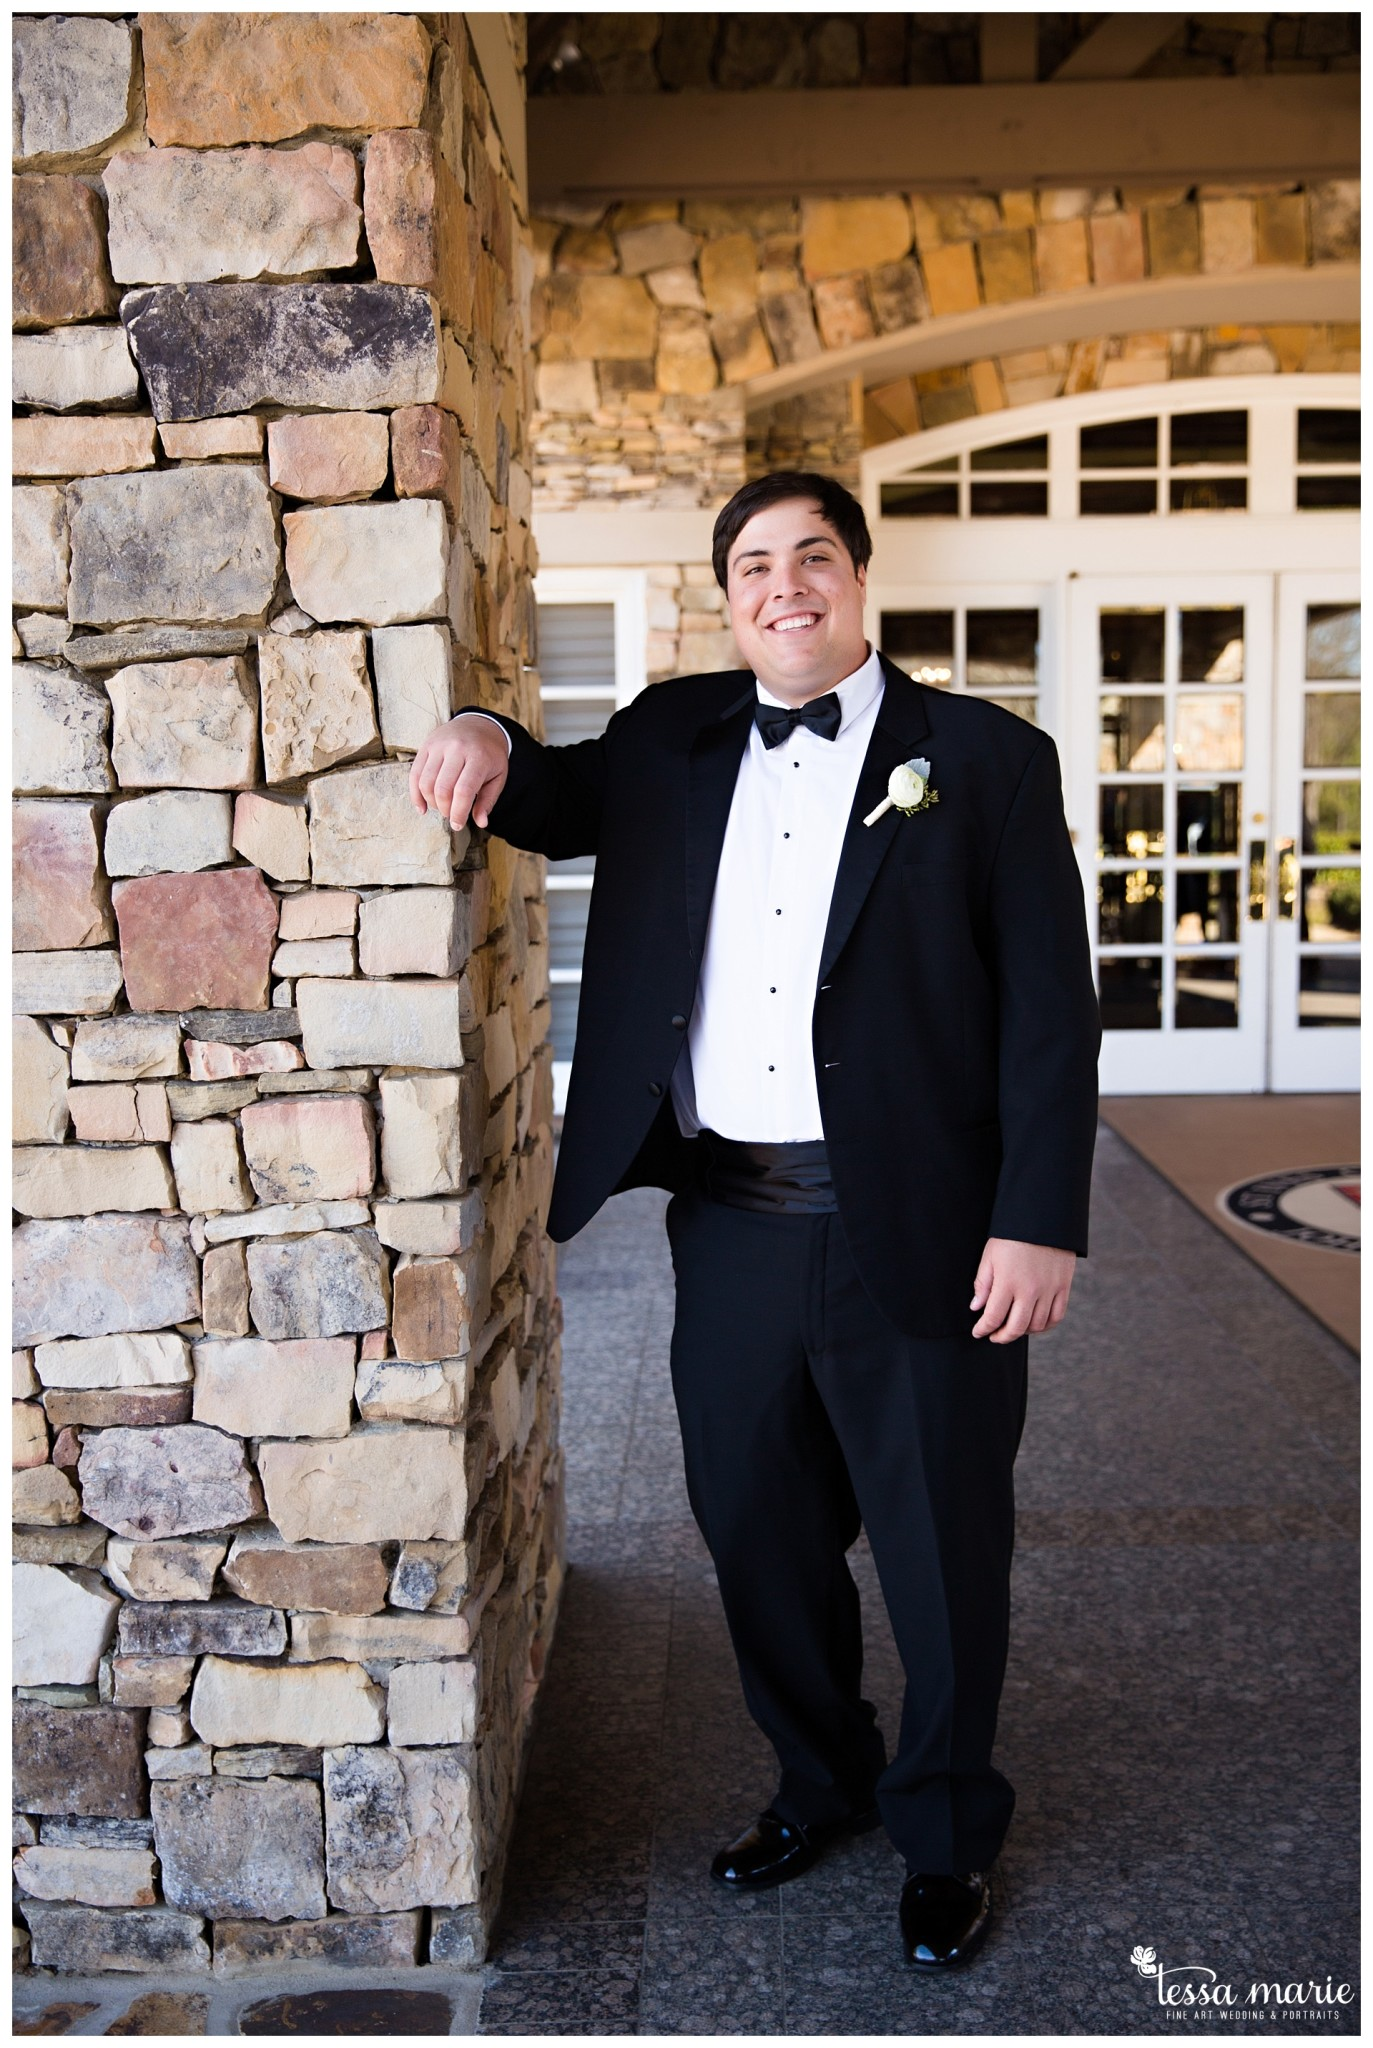 tessa_marie_weddings_legacy_story_focused_wedding_pictures_atlanta_wedding_photographer_0119